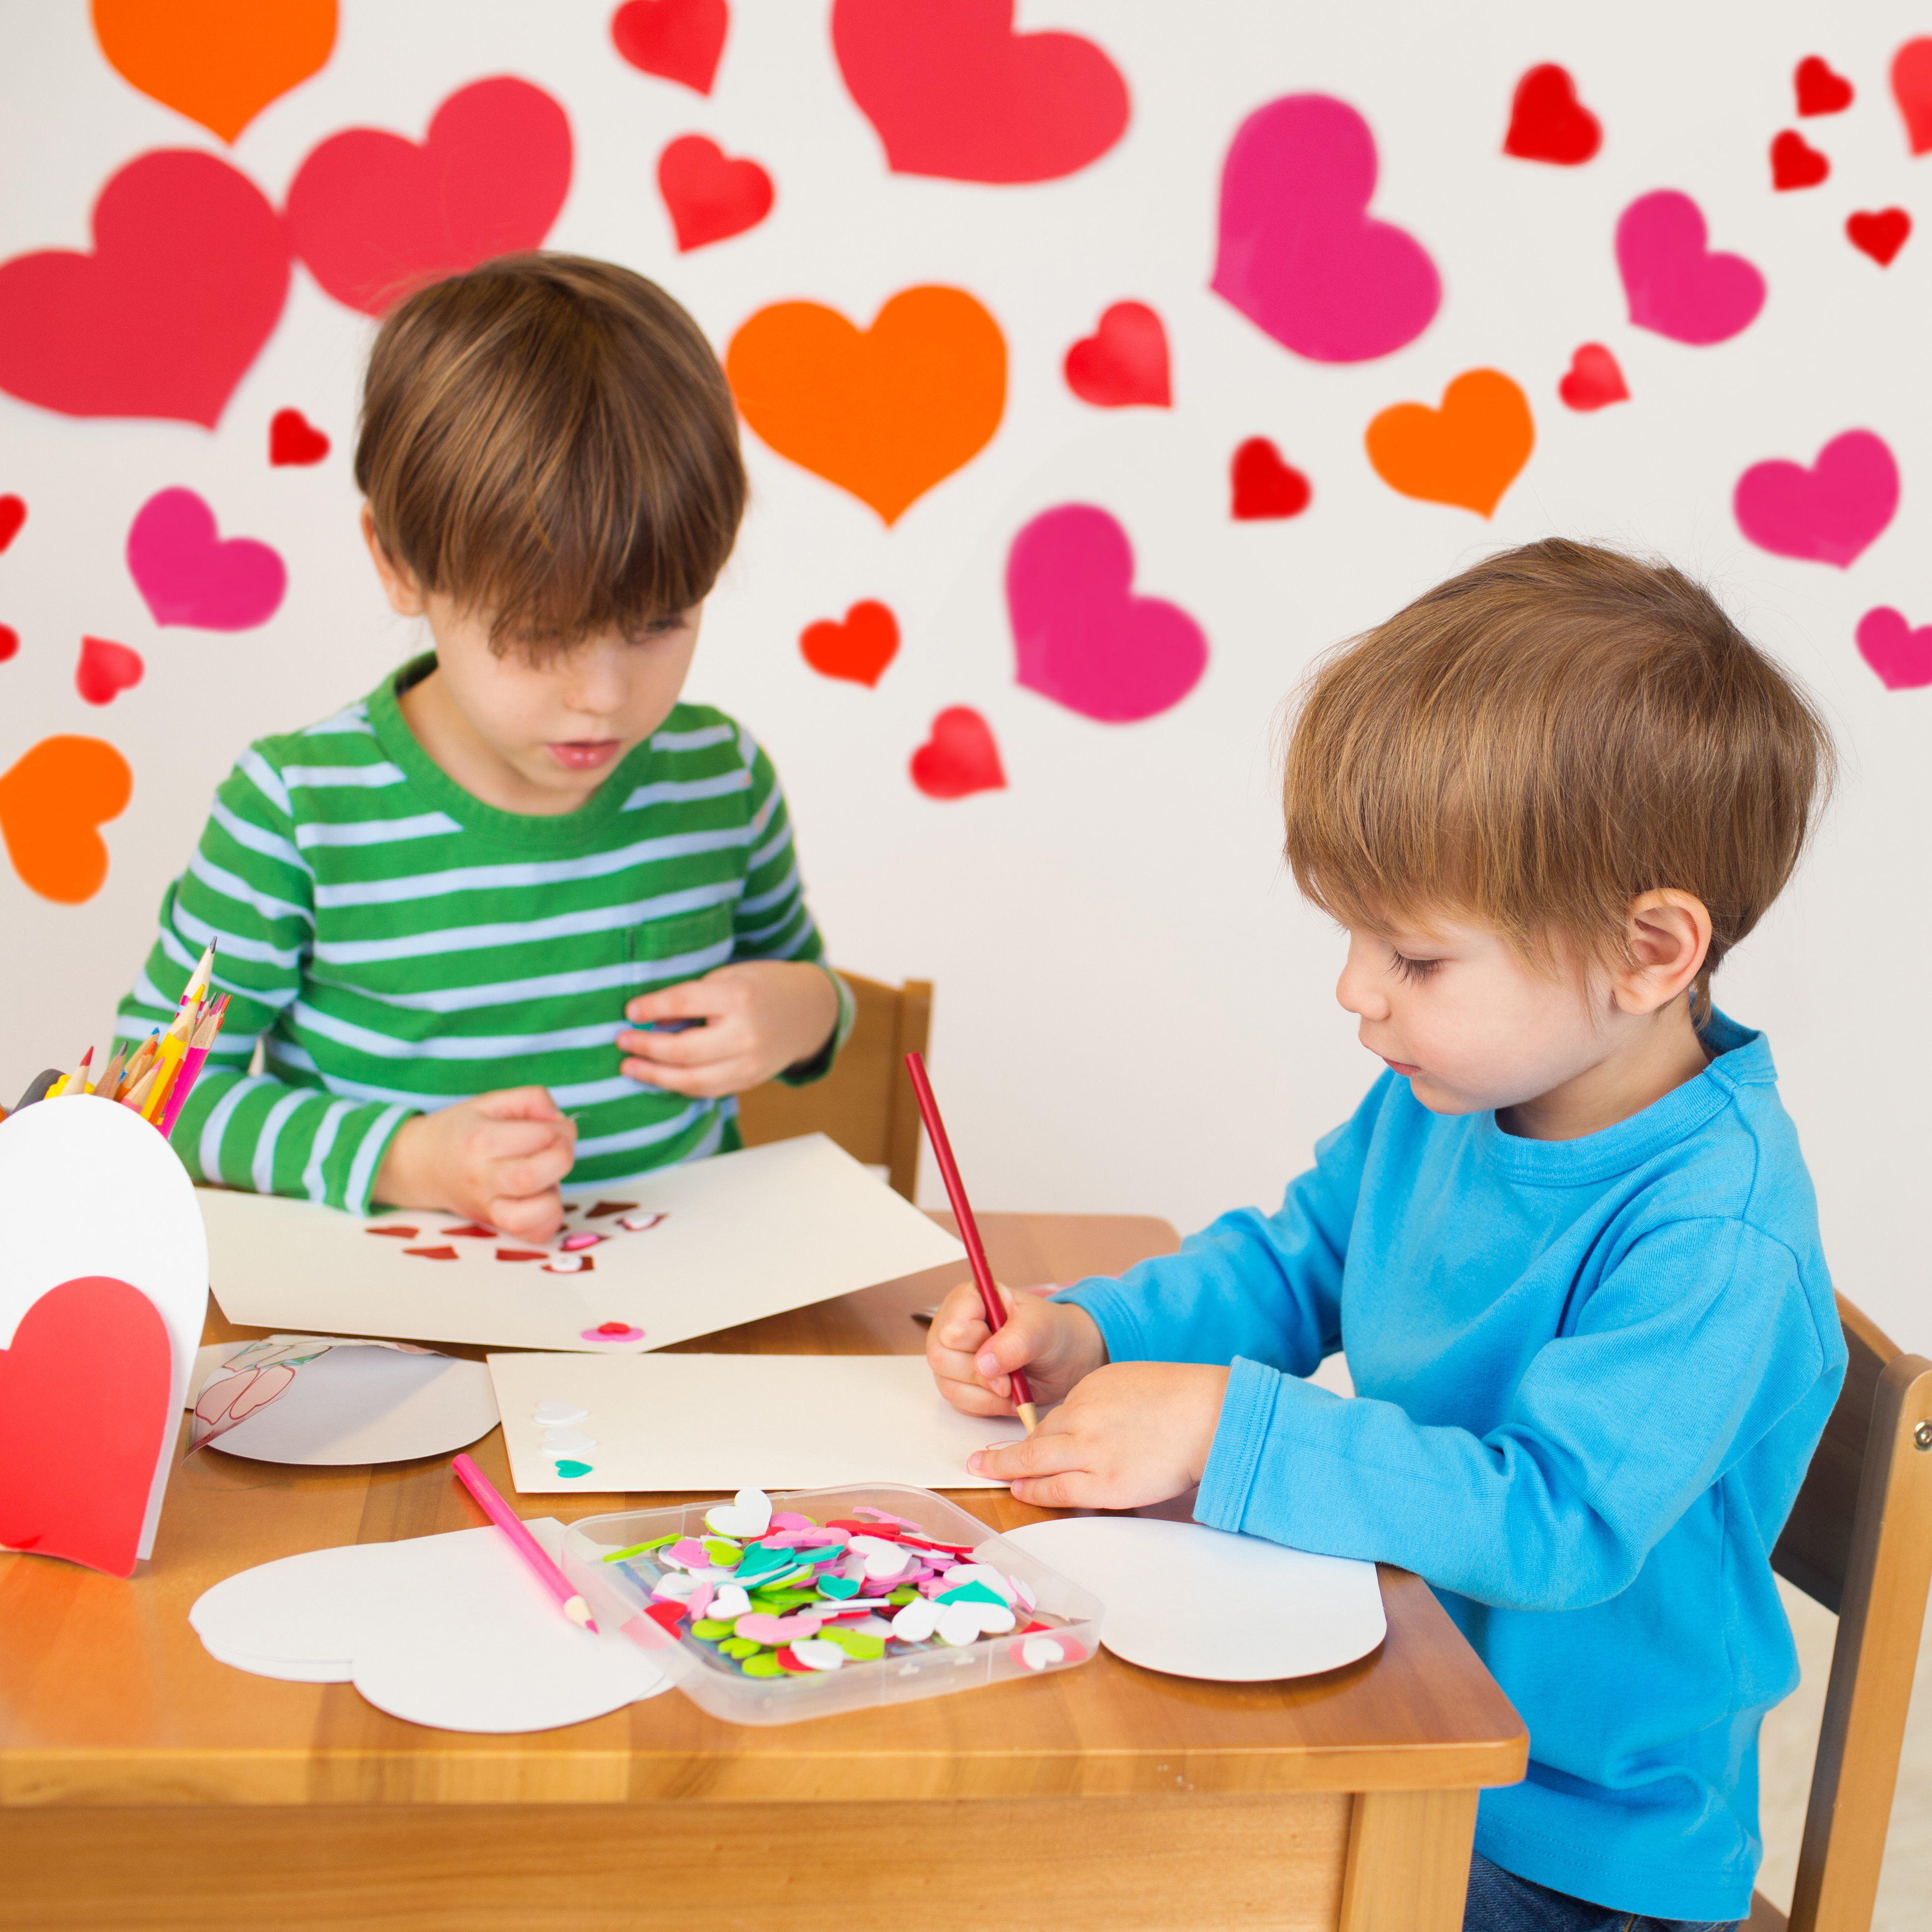 4 Valentine's day craft ideas for all ages - with printables!